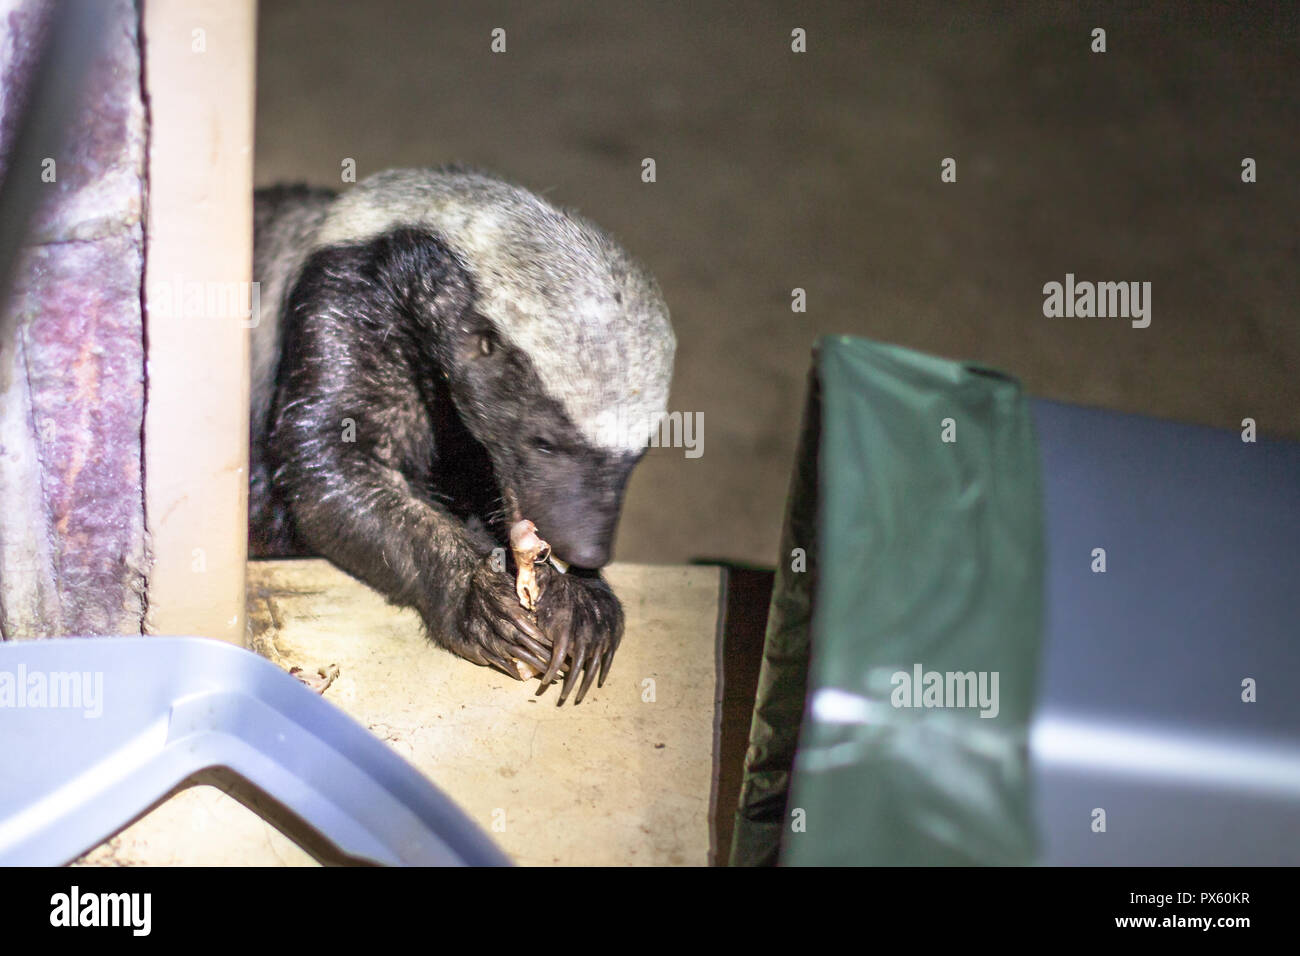 Honey badger or Mellivora capensis looking for food in the national park in South Africa. It is an omnivorous predator, rare to see in nature. It is fearless and therefore aggressive and dangerous. - Stock Image